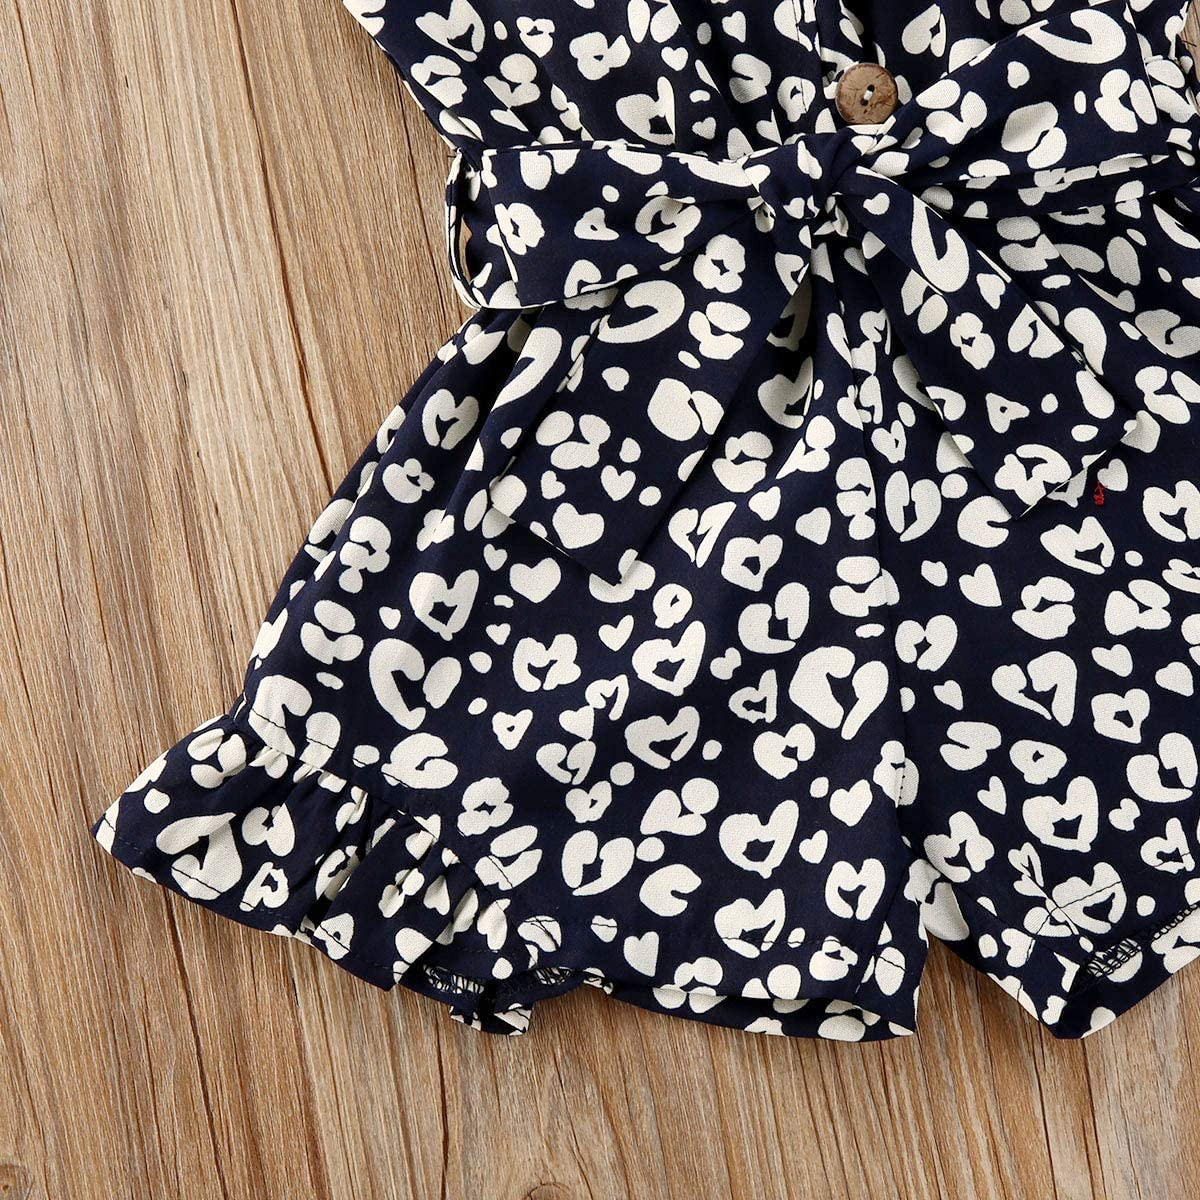 oklady Toddler Baby Girl Clothes Self Tie Sleeveless Romper Polka Dot Shape Print Short Jumpsuit Summer Outfit